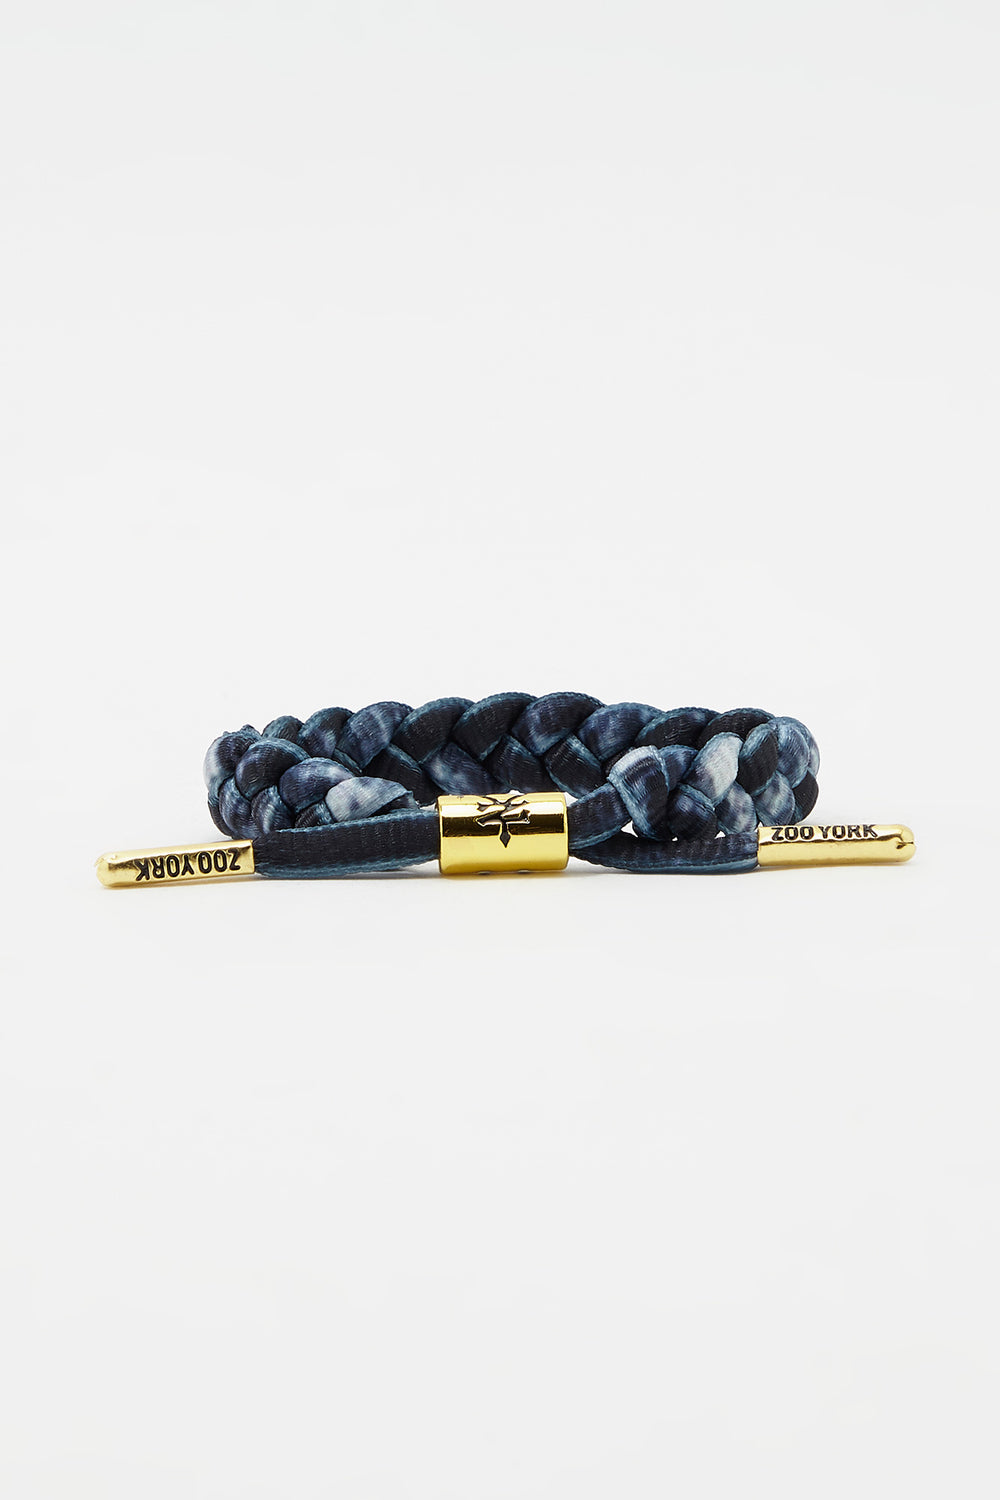 Zoo York Gold Tipped Braid Bracelet Black with White